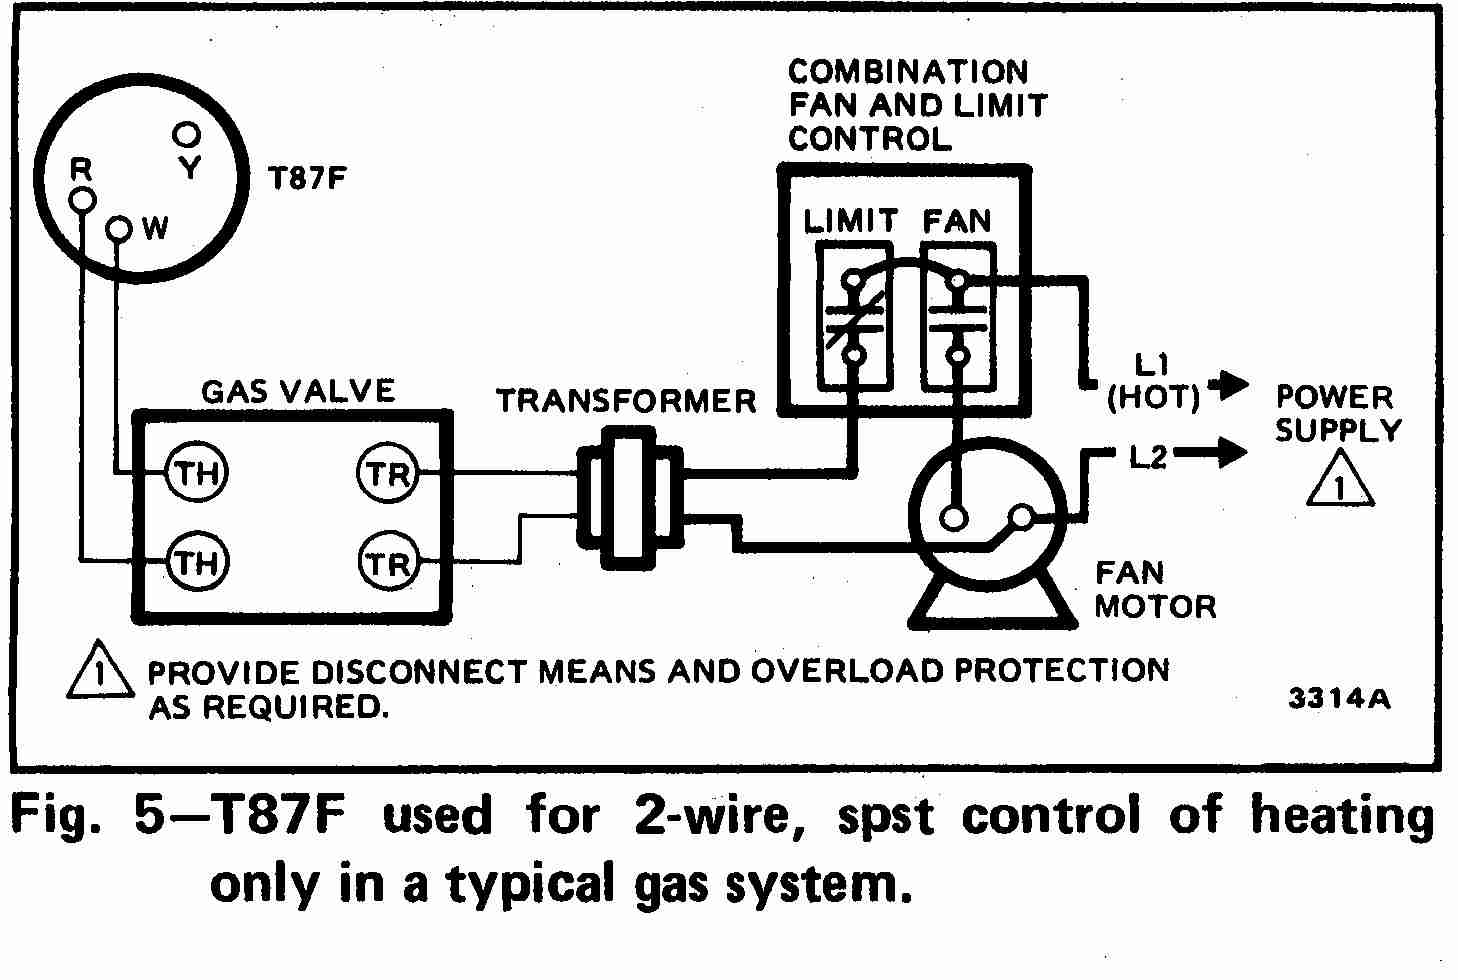 room thermostat wiring diagrams for hvac systems rh inspectapedia com wiring a basic thermostat wiring a basic thermostat